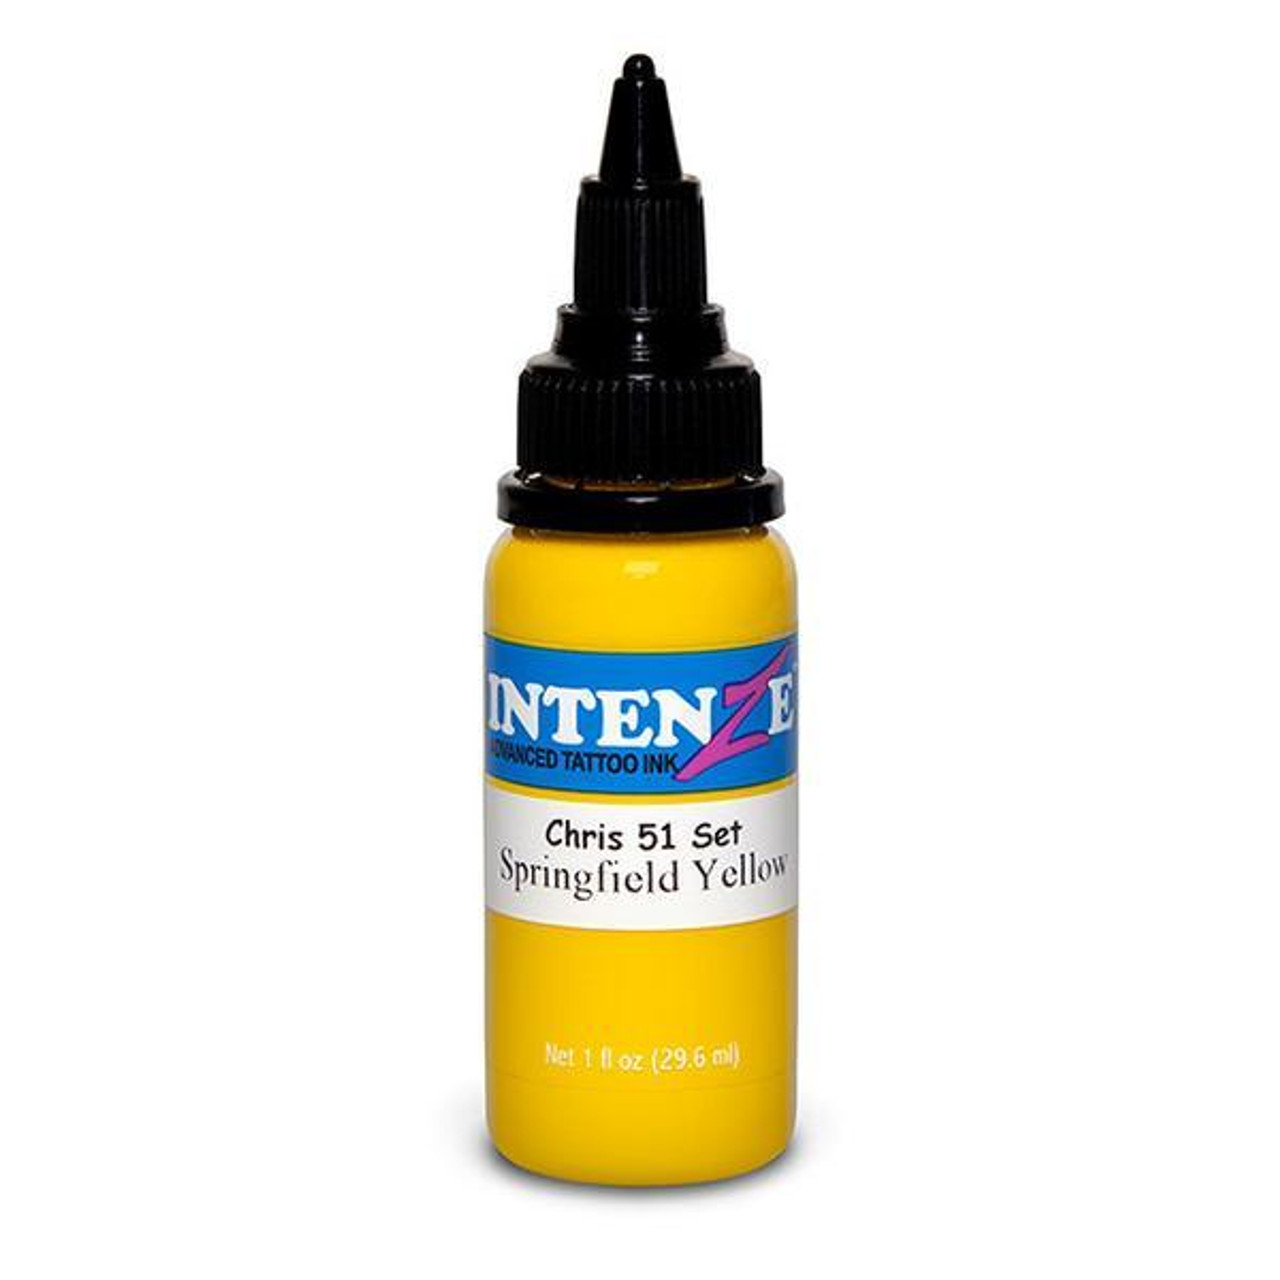 Intenze Springfield Yellow - Chris 51 Geek Tattoo Ink Set